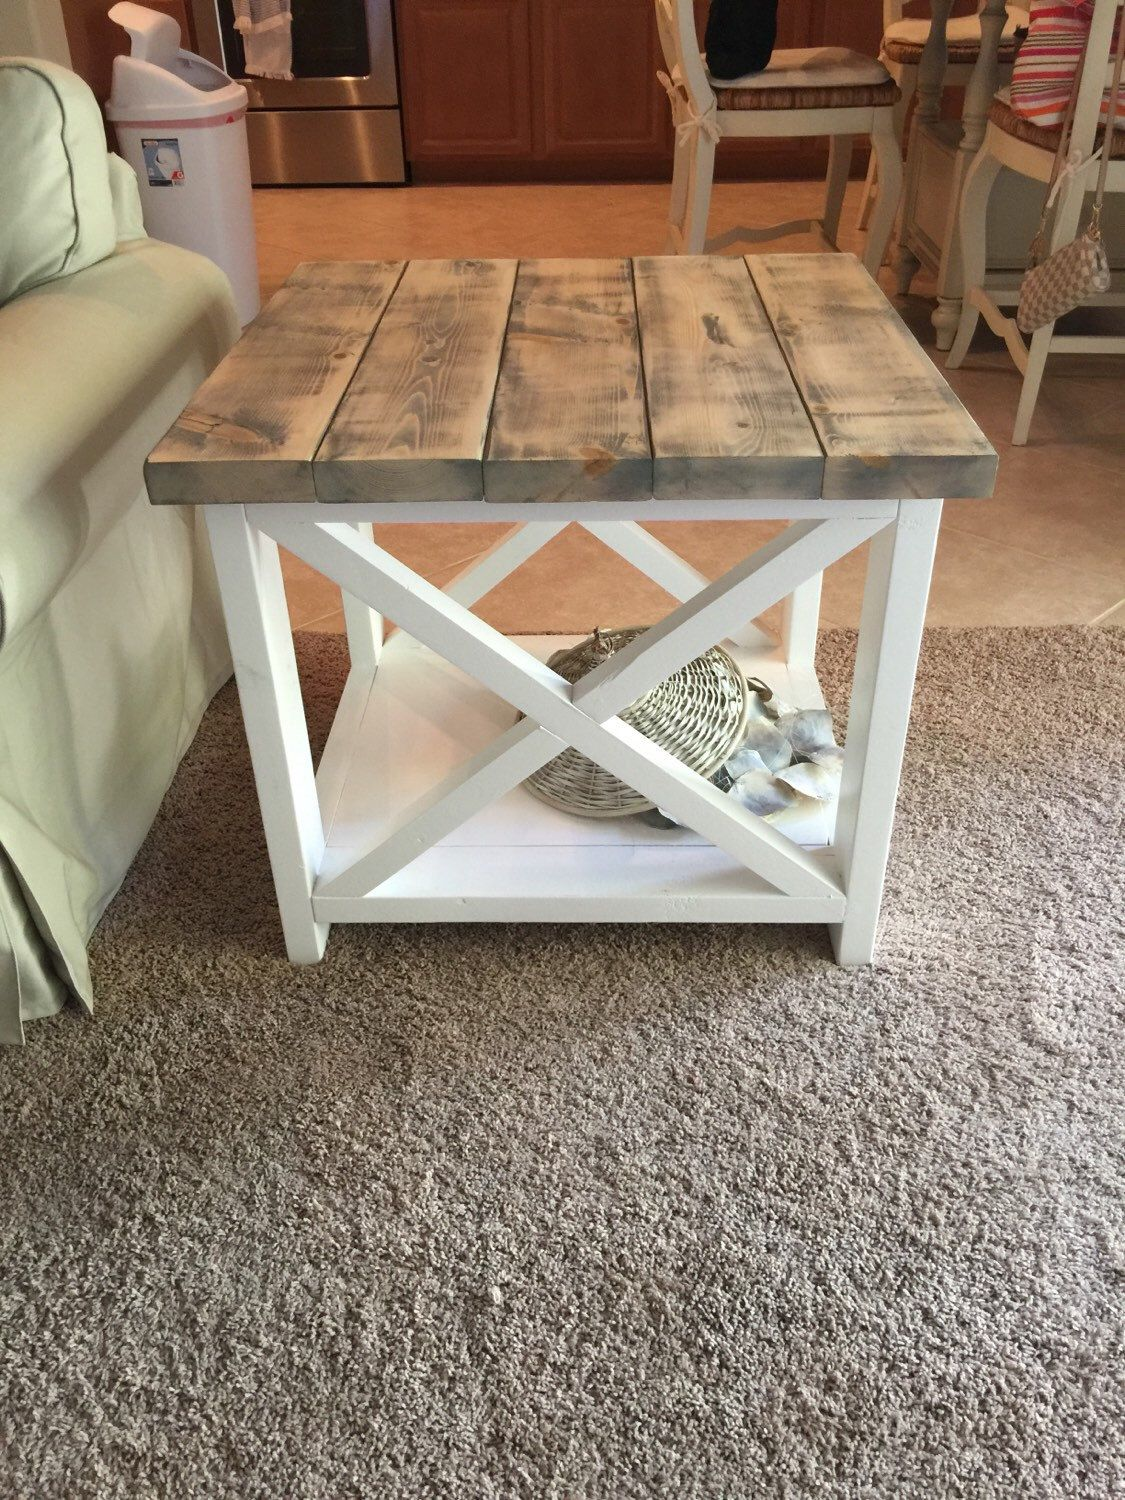 pin sarah wazdatskey places think yes farmhouse rustic end table decor best design ideas give aesthetic room white tables barn wood ashley metal coffee black dog crate outdoor